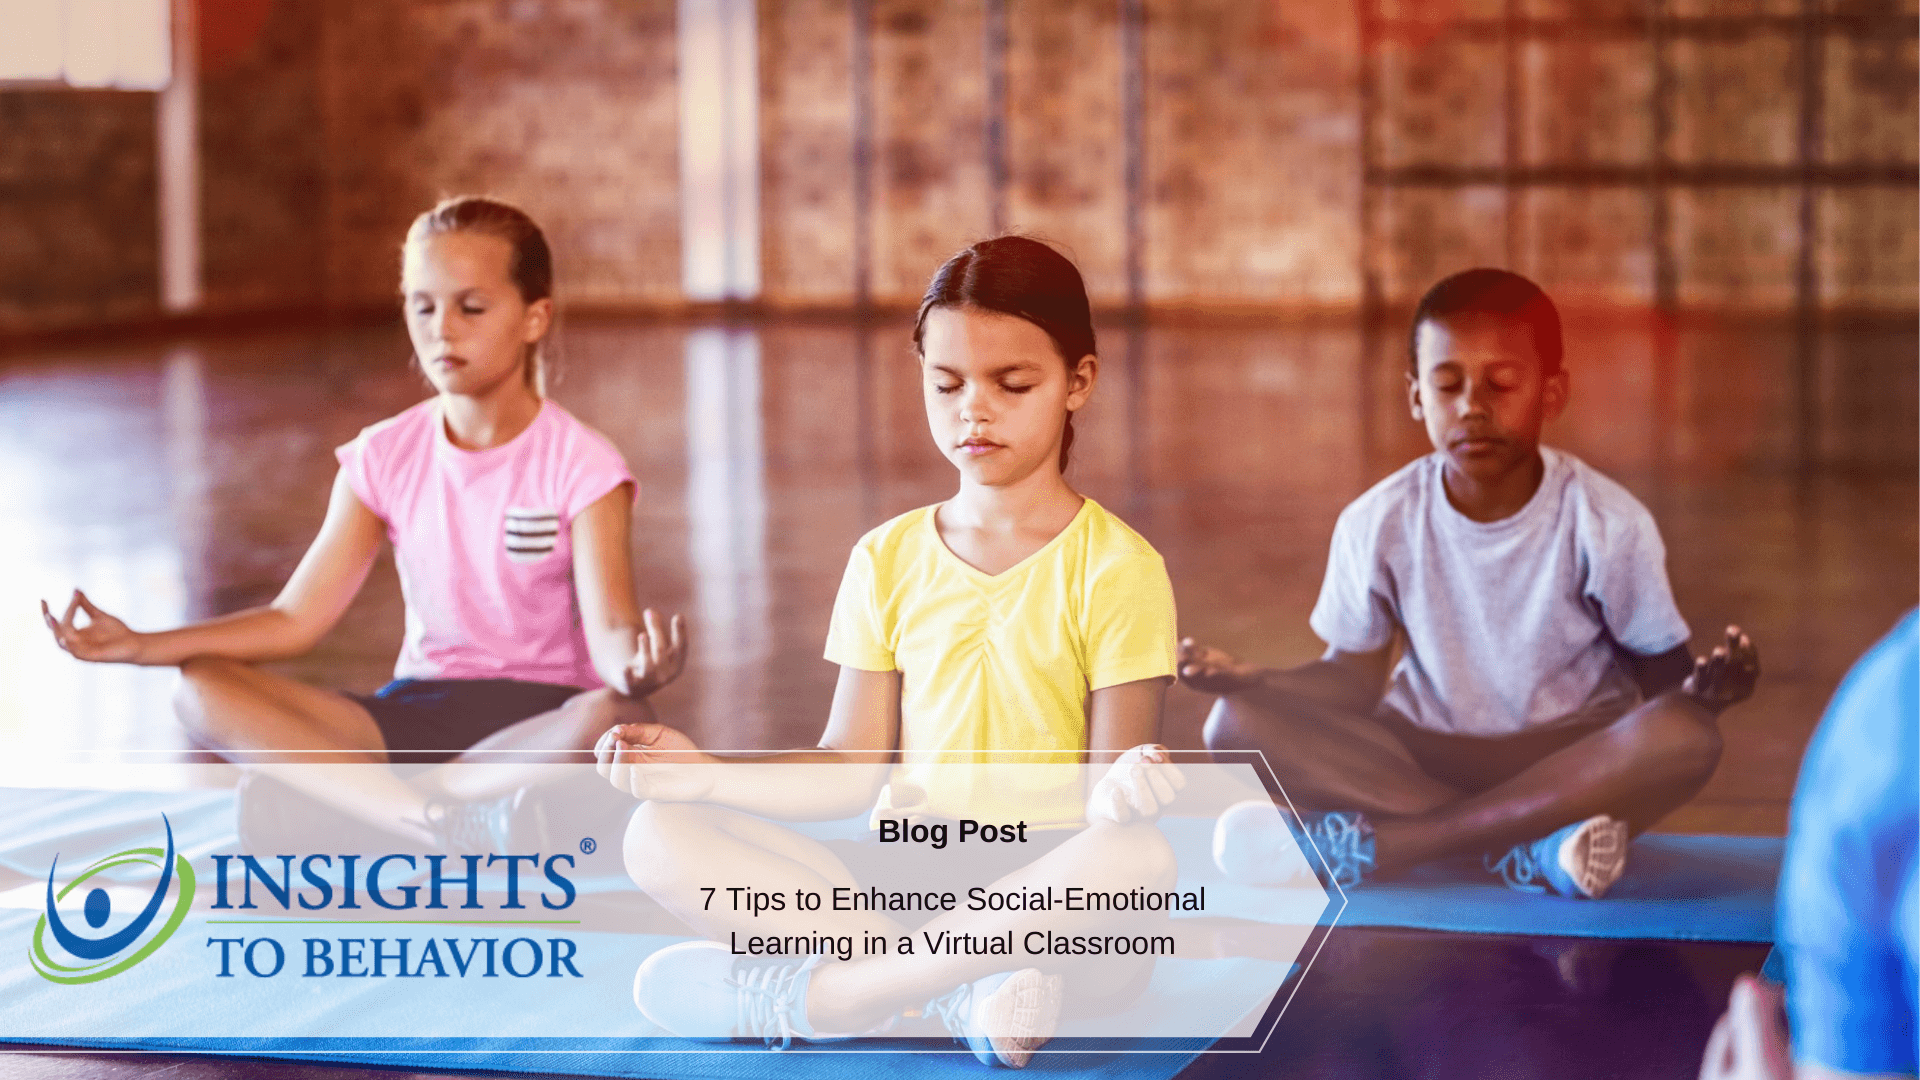 7 Tips to Enhance Social-Emotional Learning in a Virtual Classroom